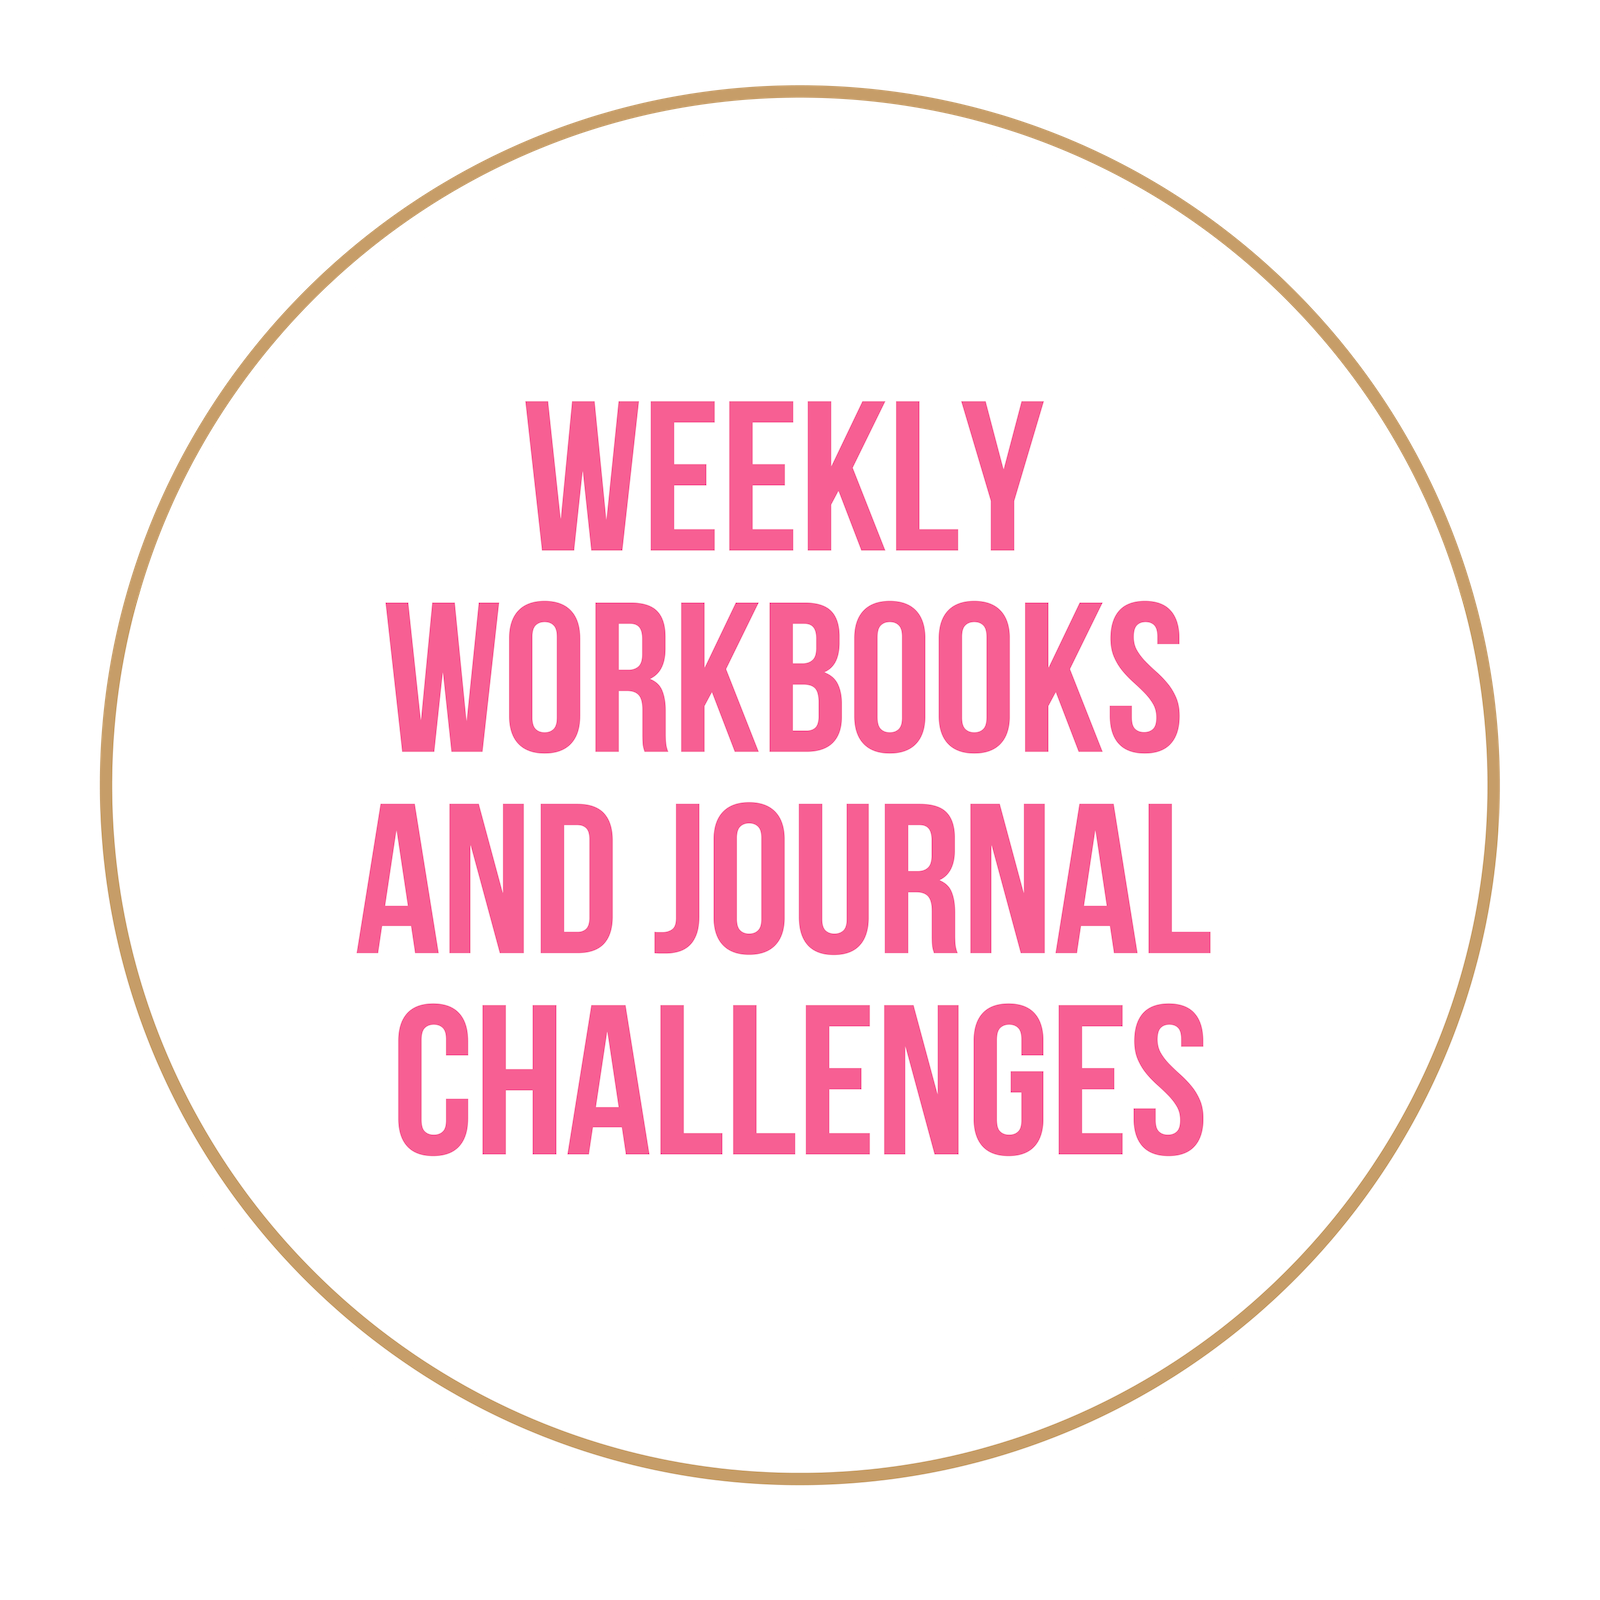 - Your weekly workbooks will include reflective and action-driven written exercises along with journal challenges focusing on different areas of your life.